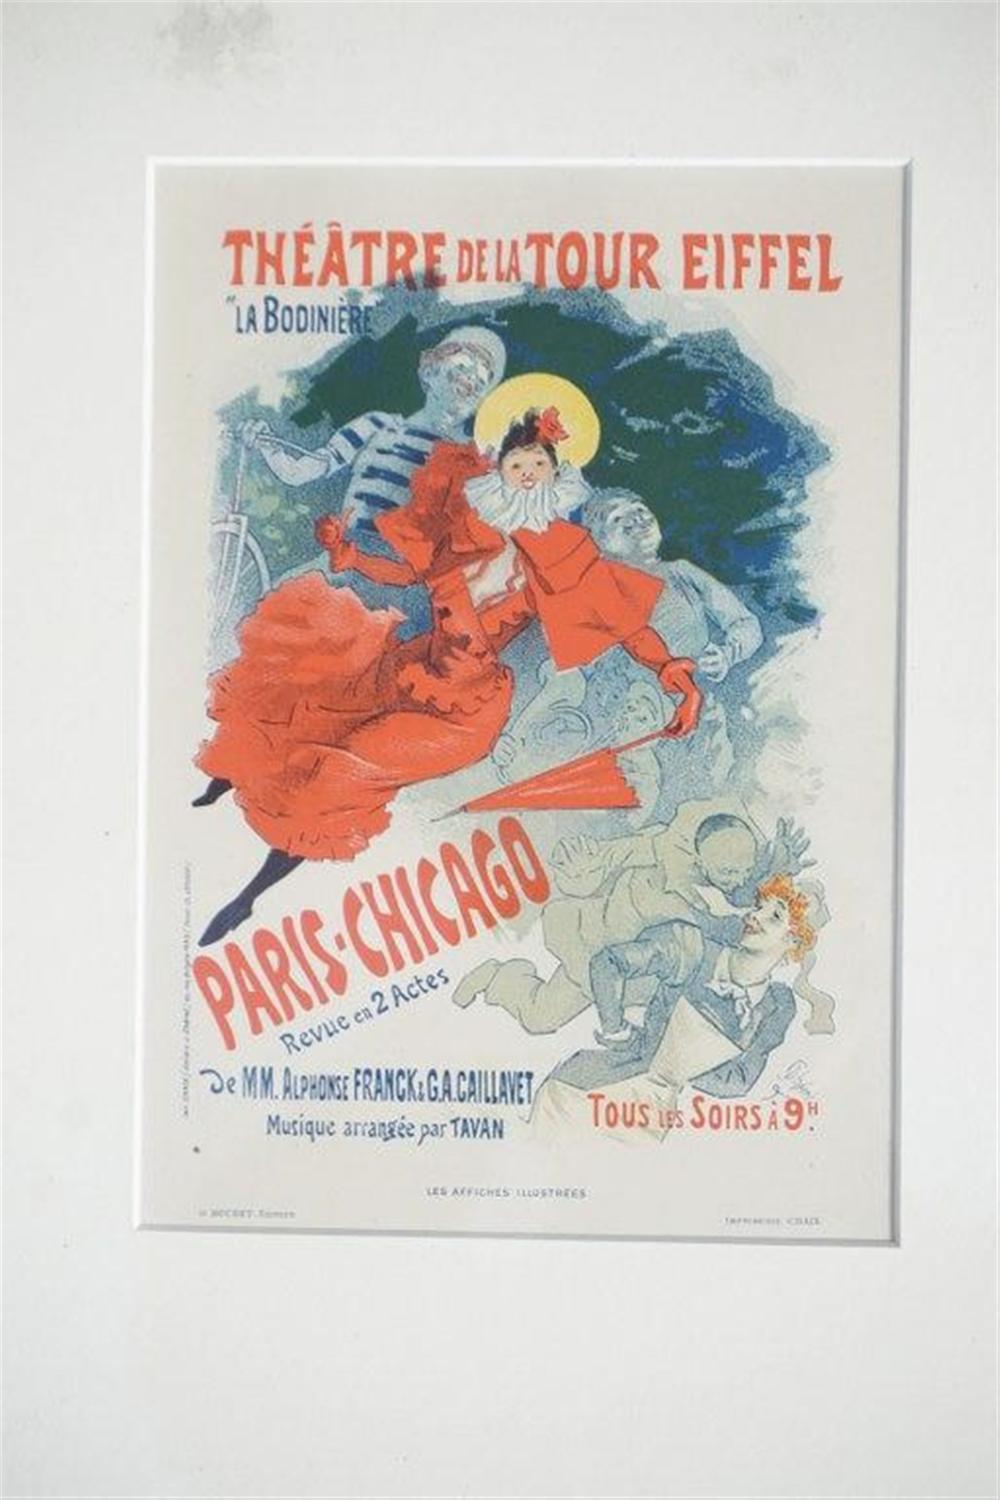 "1896 CHERET PARIS-CHICAGO THEATRE DE LA TOUR EIFFEL STONE LITHO POSTER, SHEET SIZE 8 3/4"" X 12 1/4"", EXCELLENT CONDITION, SHRINK WRAPPED AND MATTED, FROM RETIRED DEALERS COLLECTION."